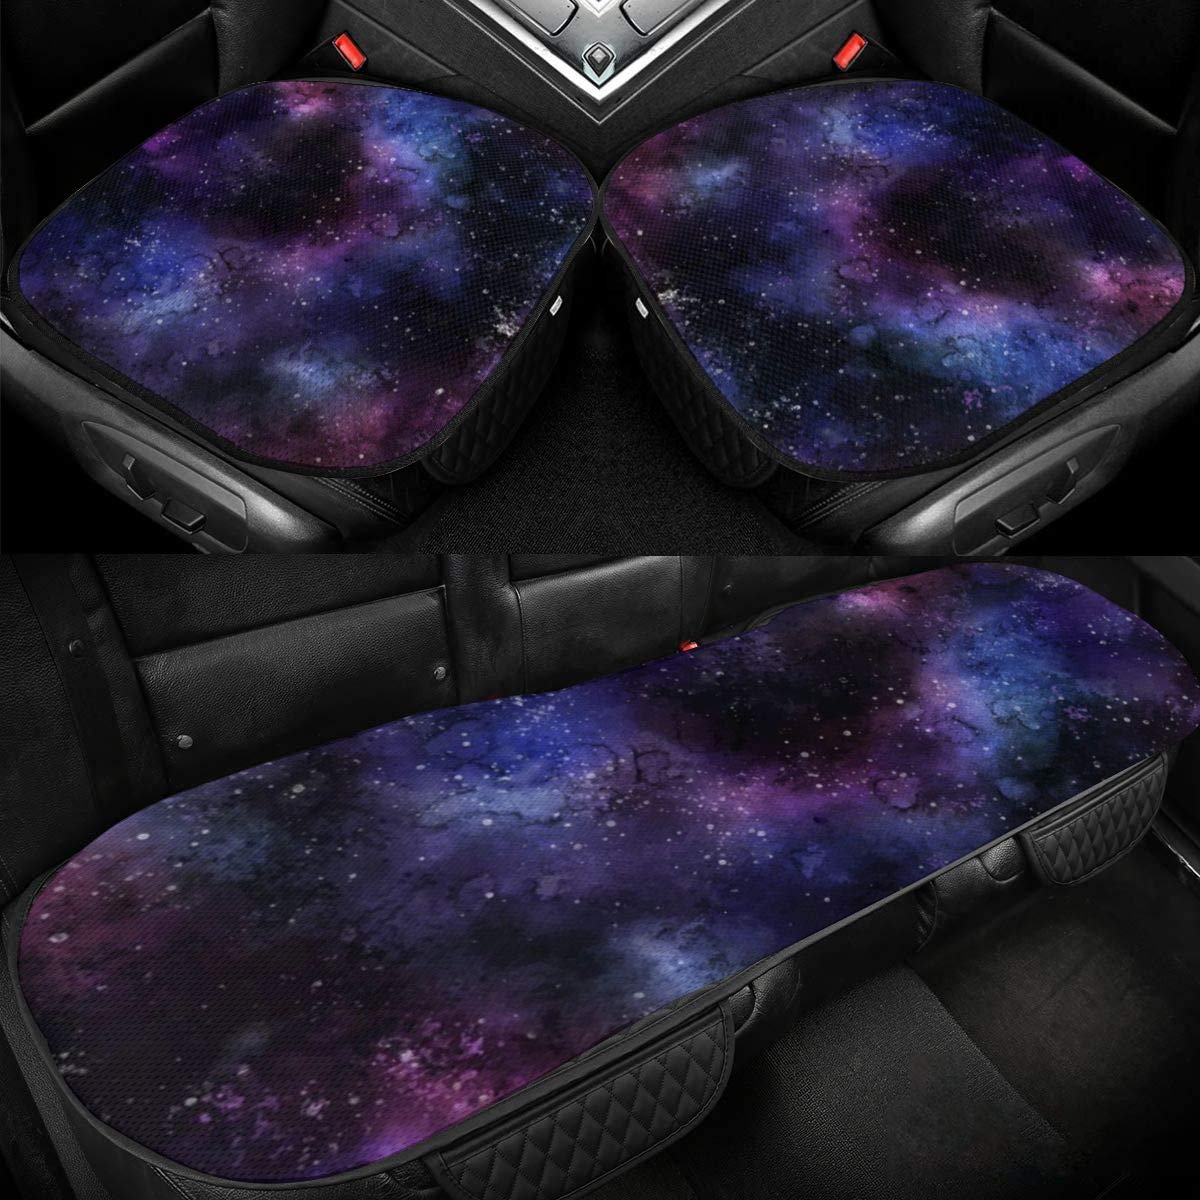 Night Sky Stars Space Car Ice Silk Seat Cushion Pad 3 Pieces Sets Comfort Seat Protector for Car Driver Seat Office Chair Home Use Seat Cushion